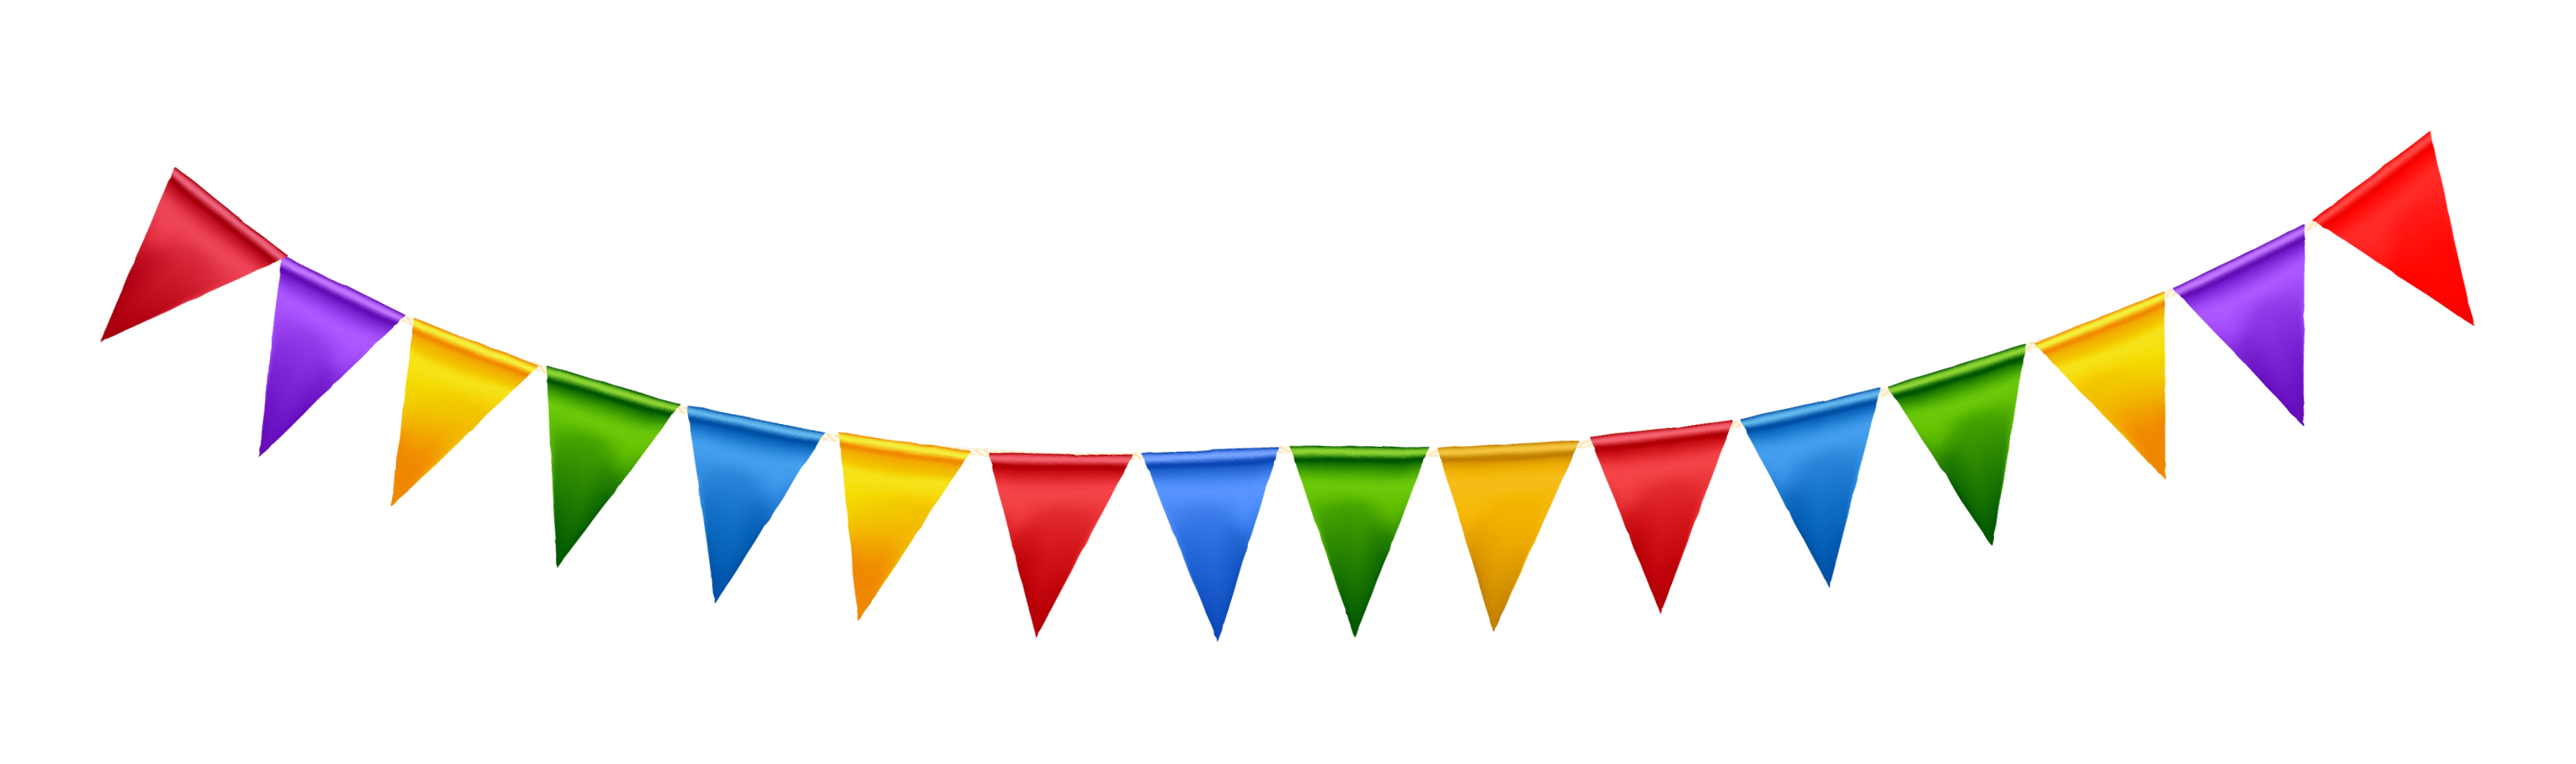 Streamers clipart. Party streamer transparent png